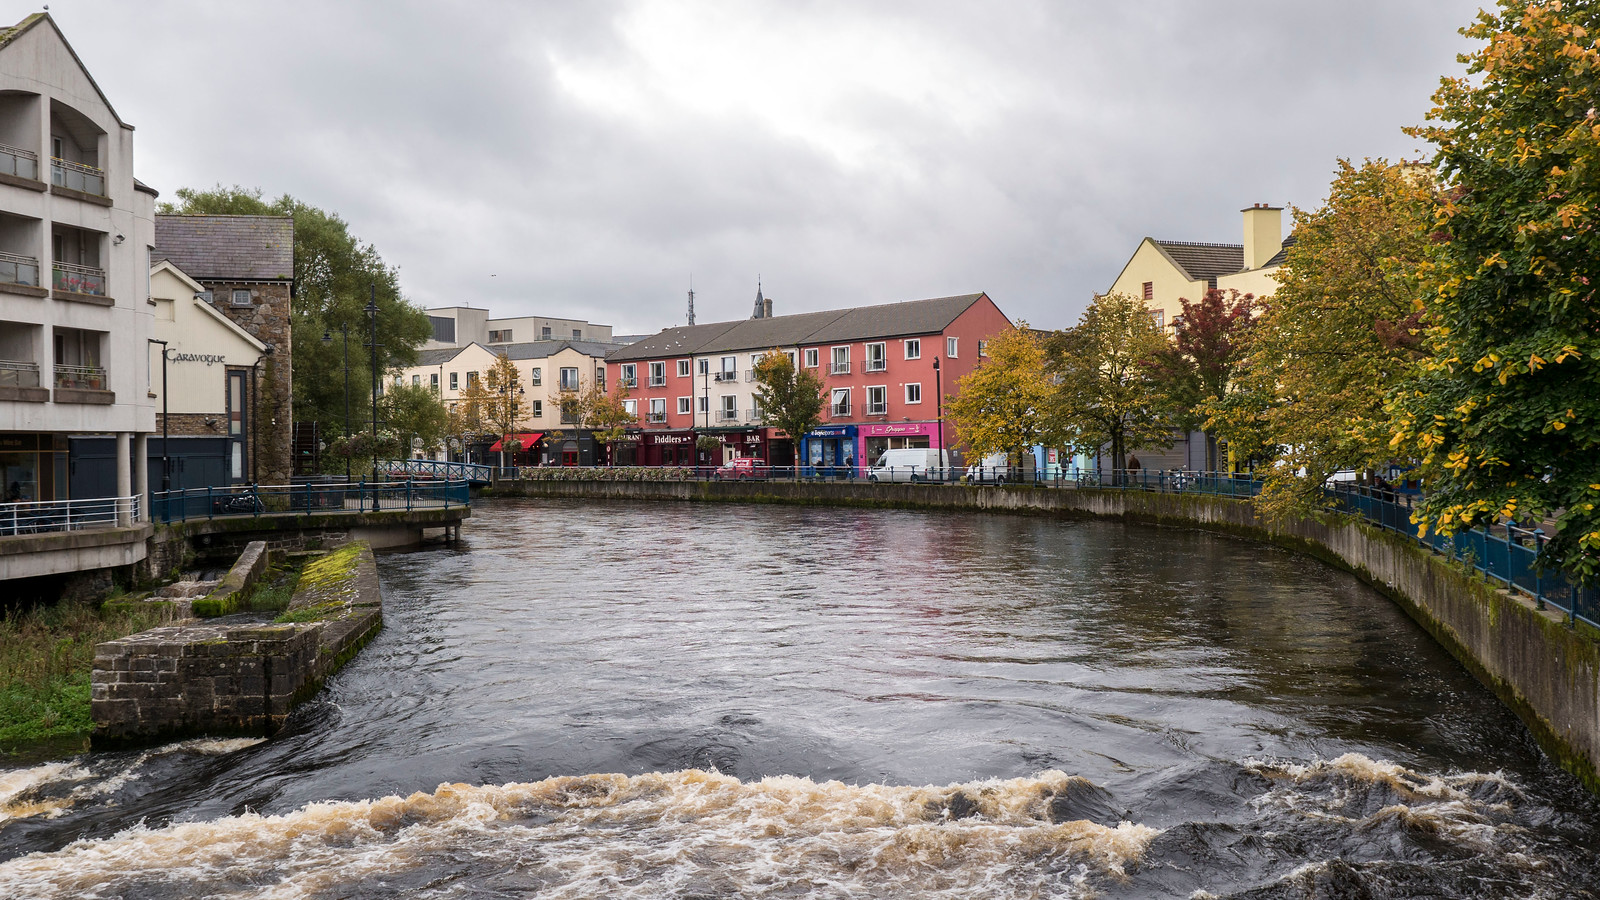 Things to Do in Sligo Ireland - One Day in Sligo